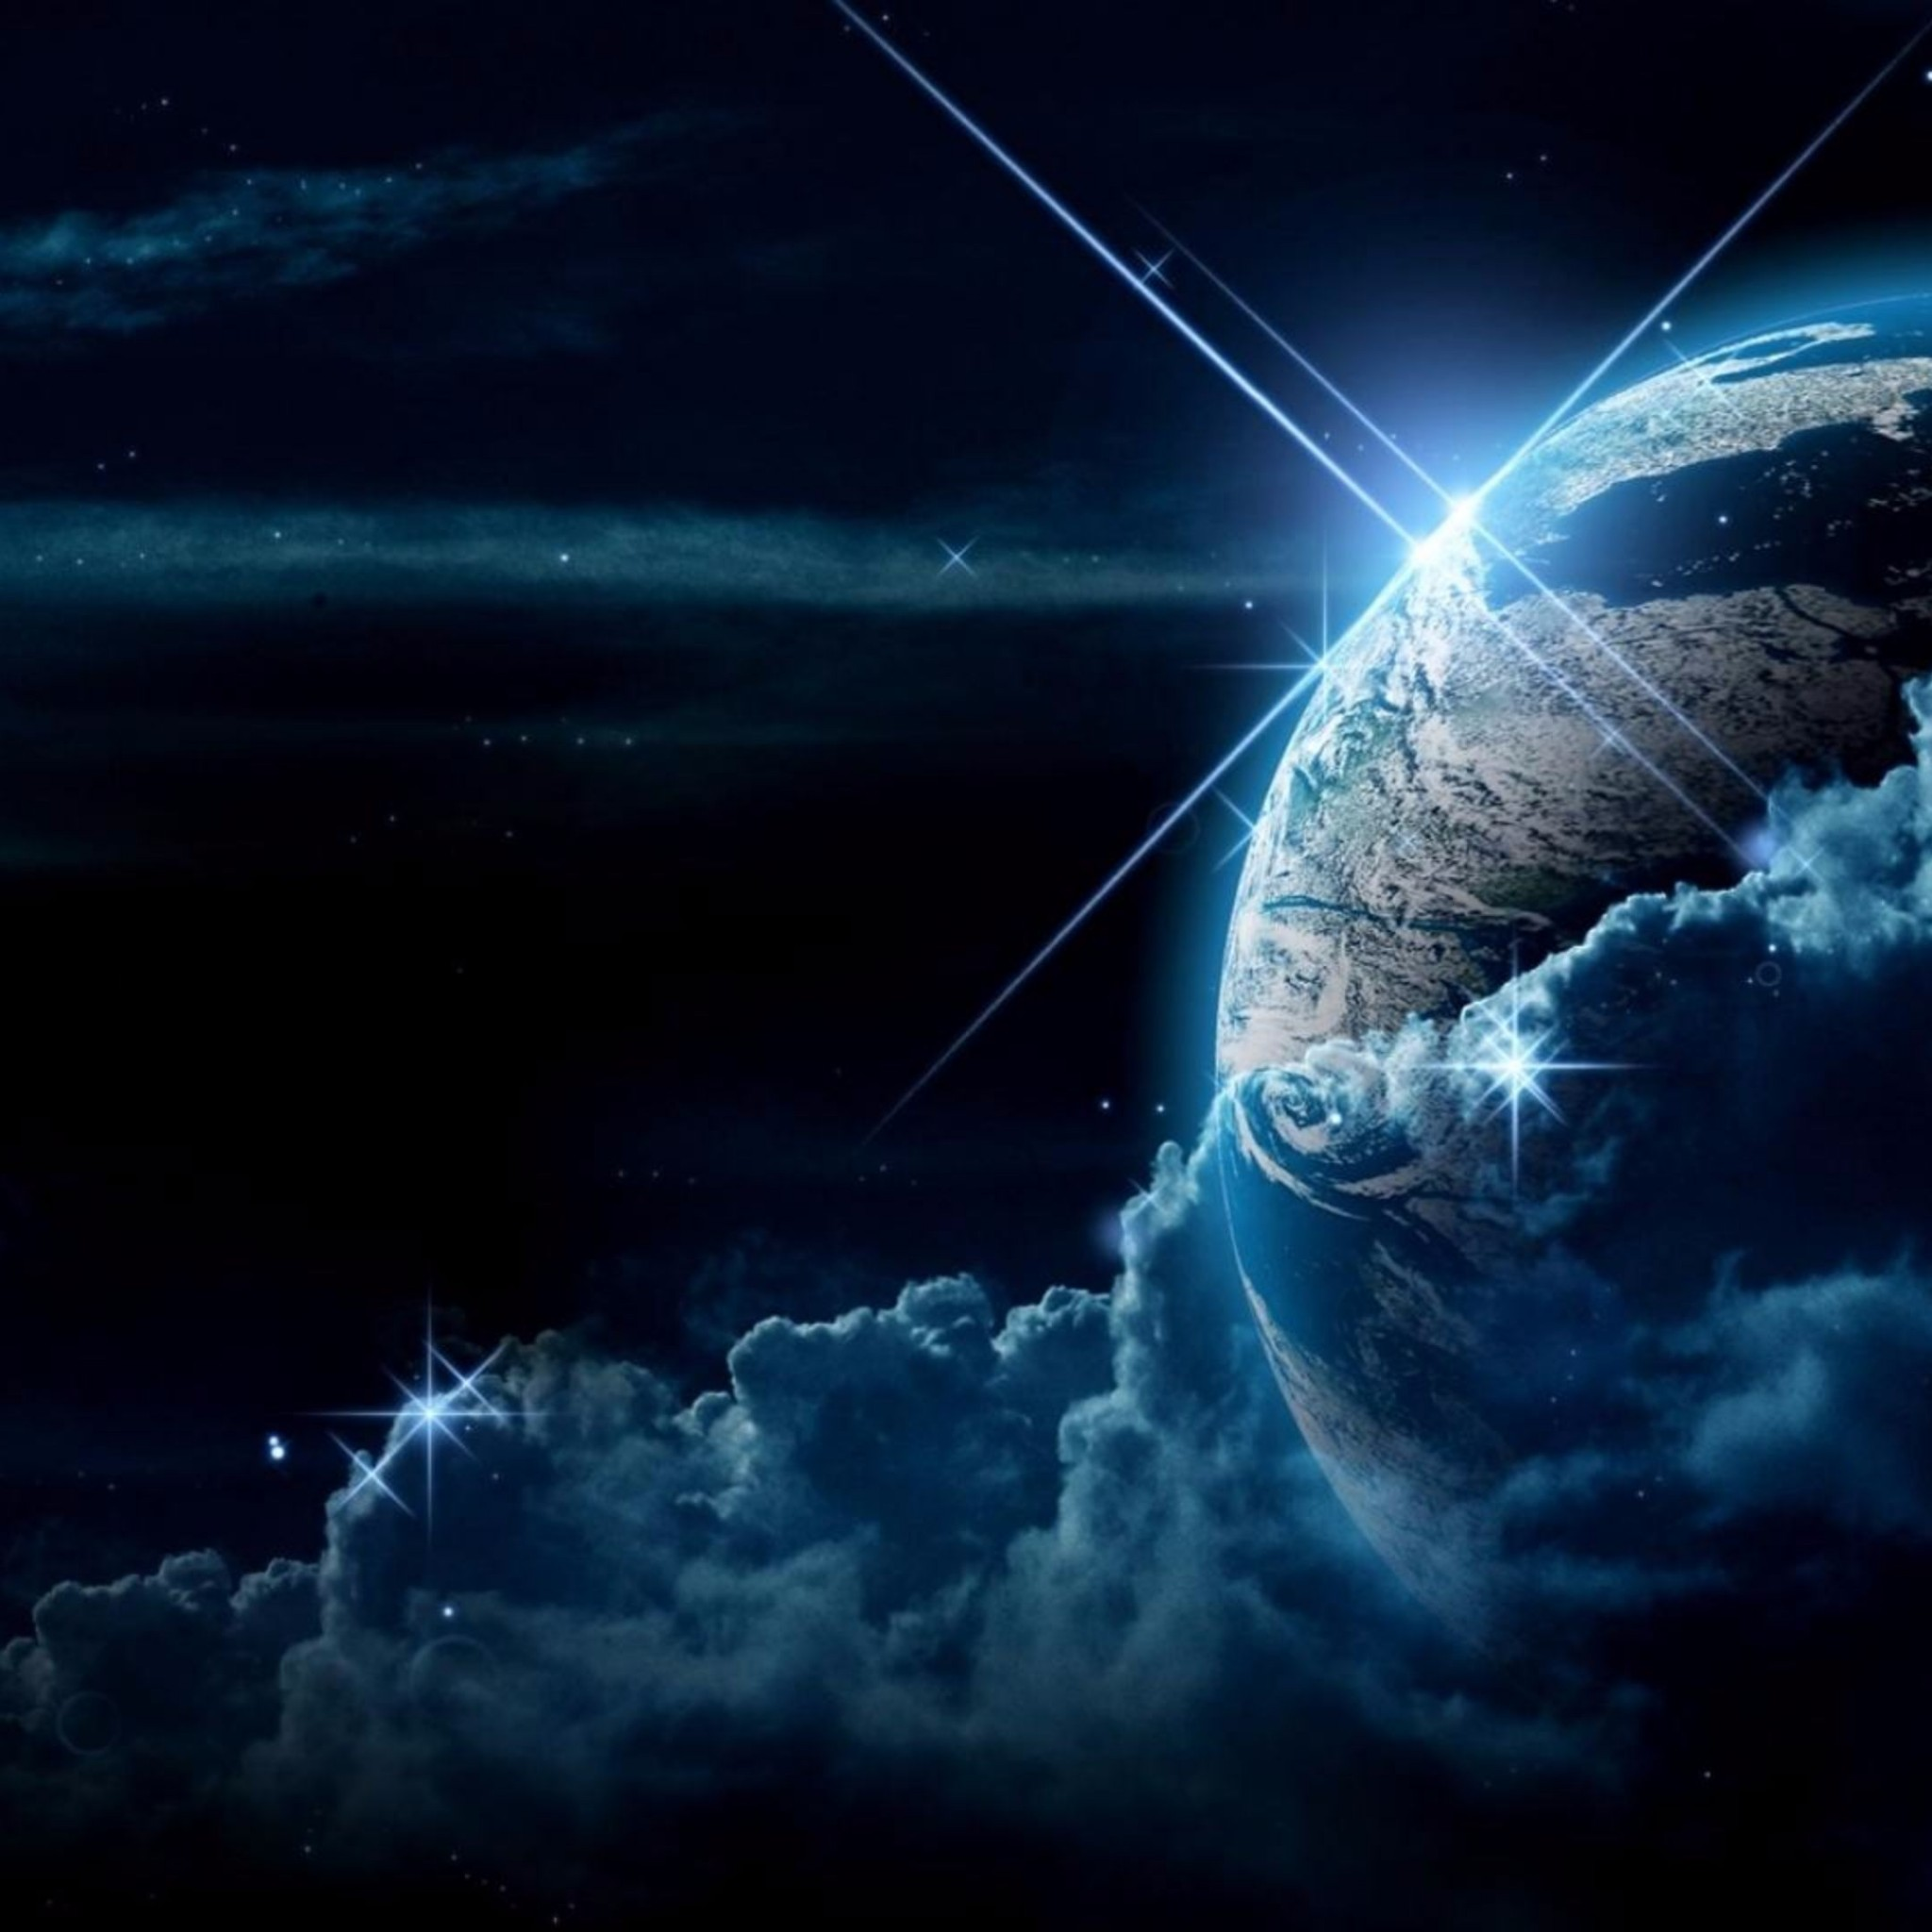 Cool Space Background Wallpapers